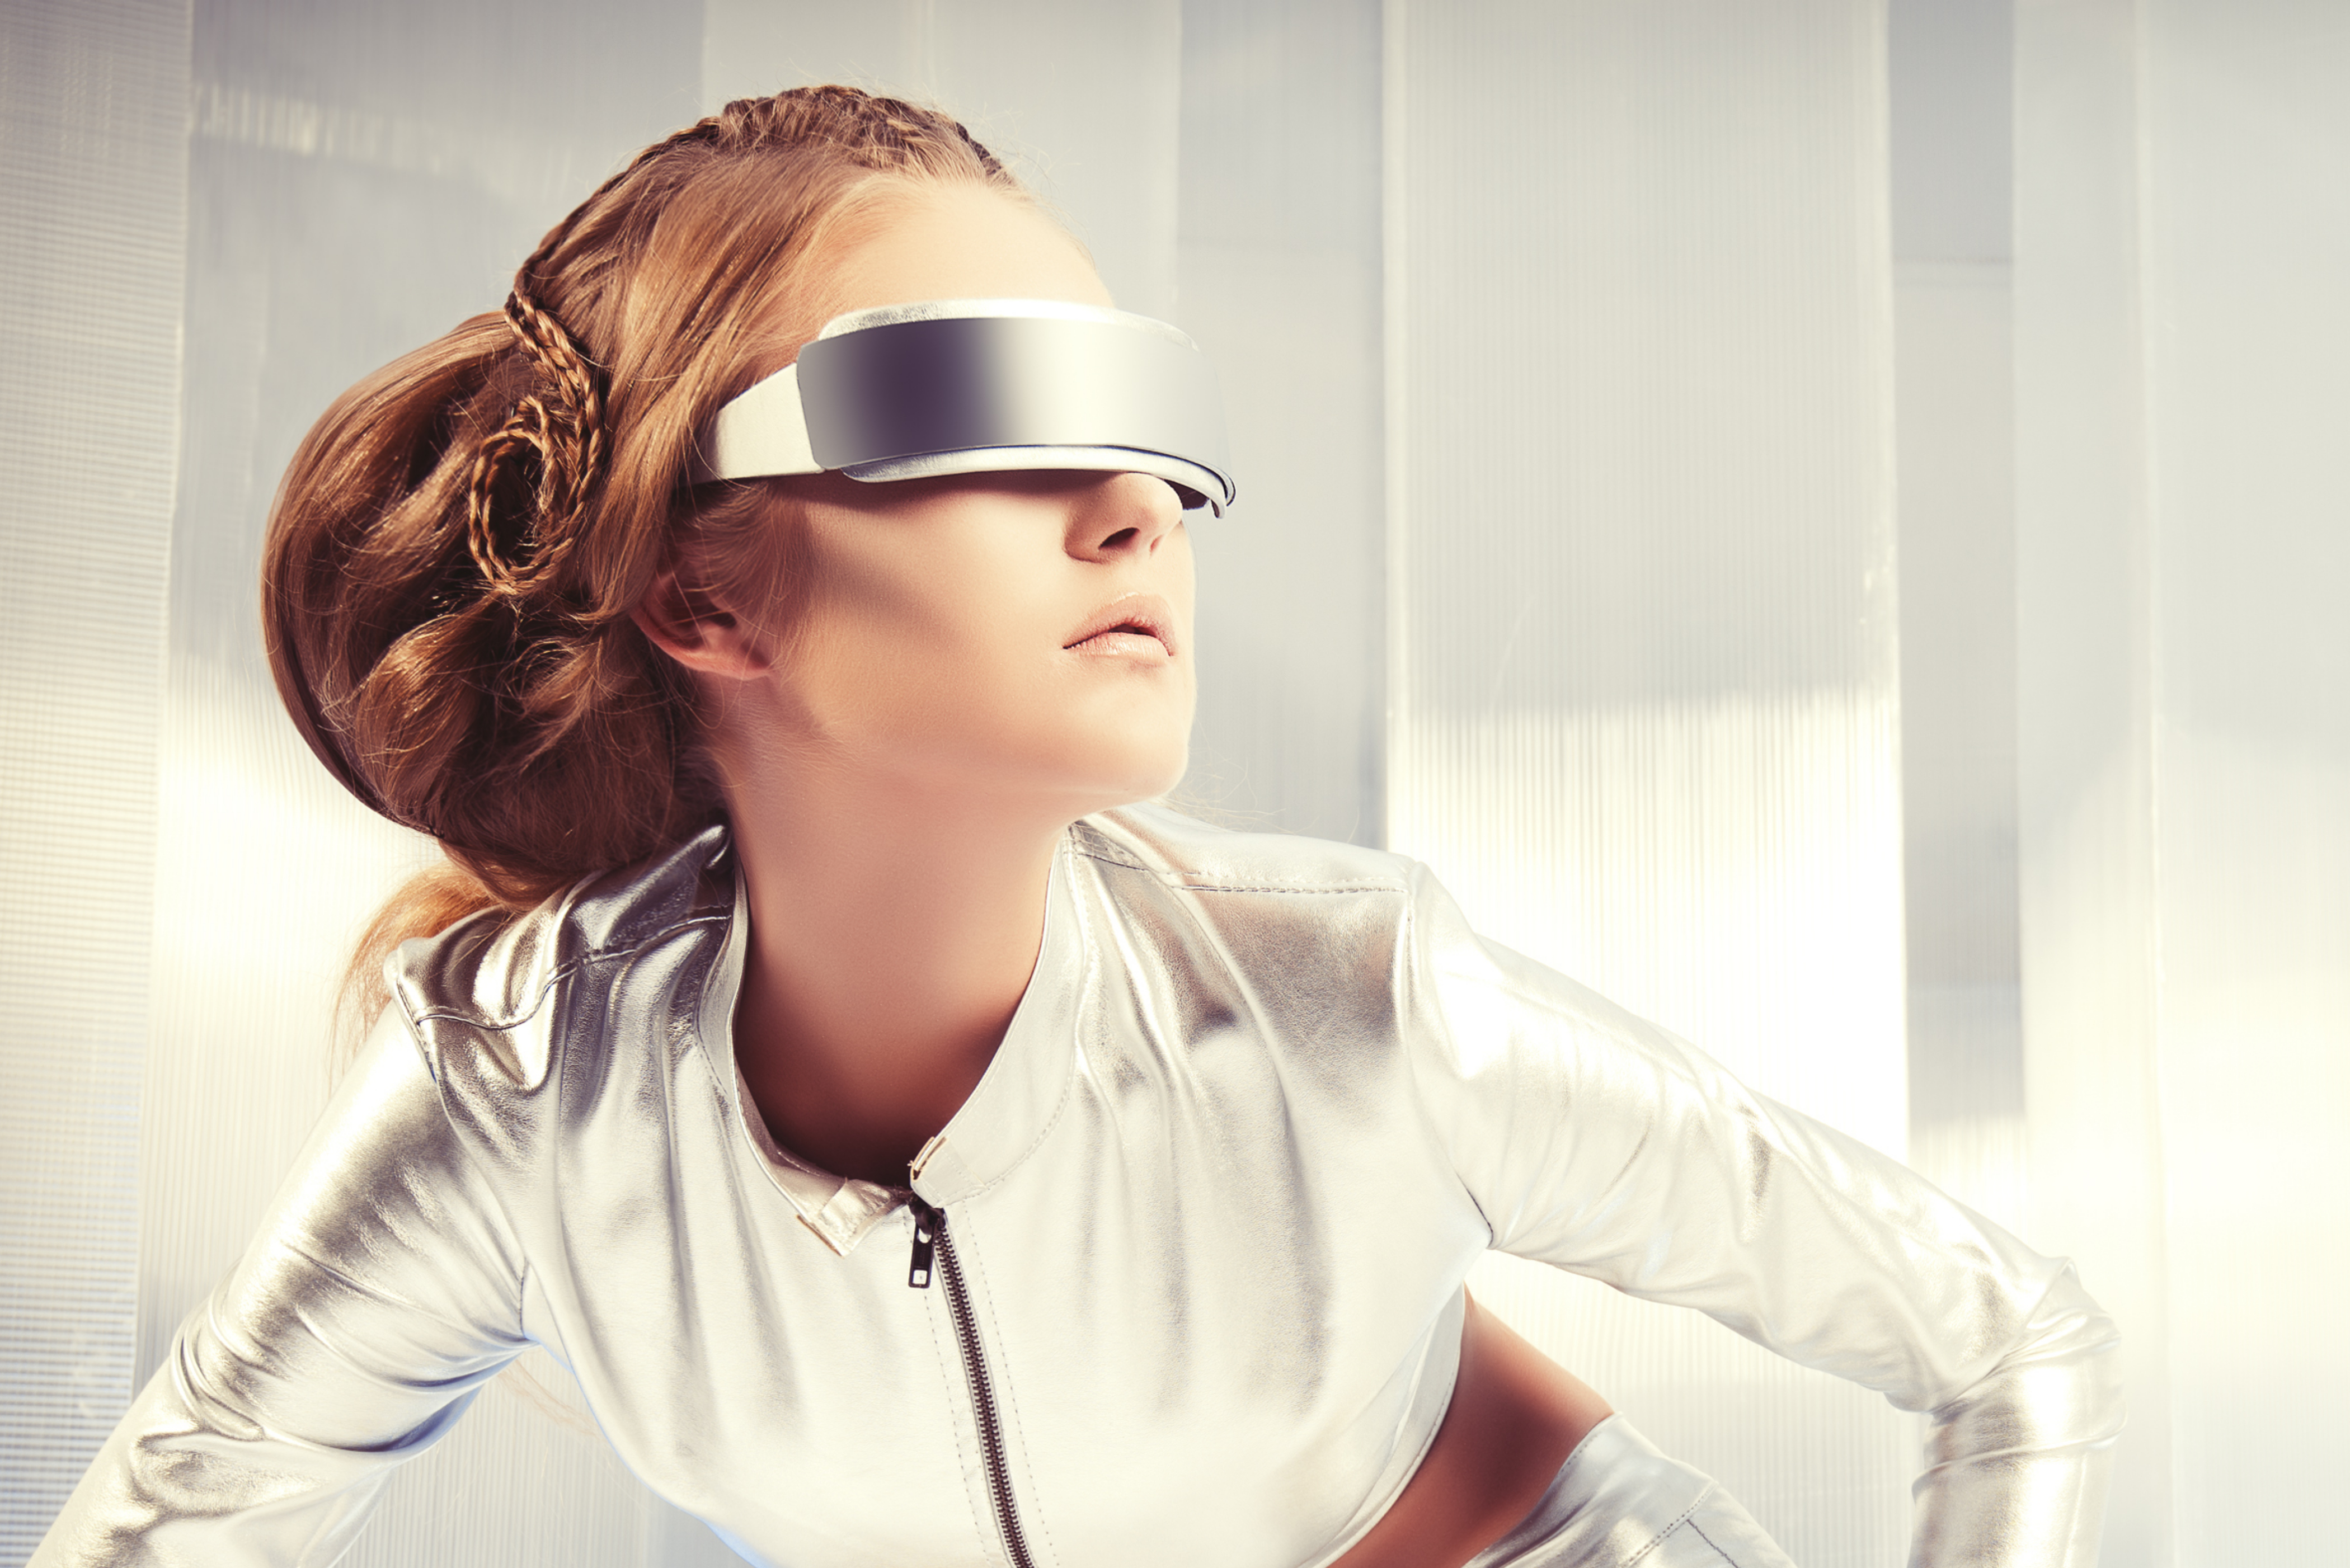 Fashion + Technology = The New Formula To Success And Virality In This Era